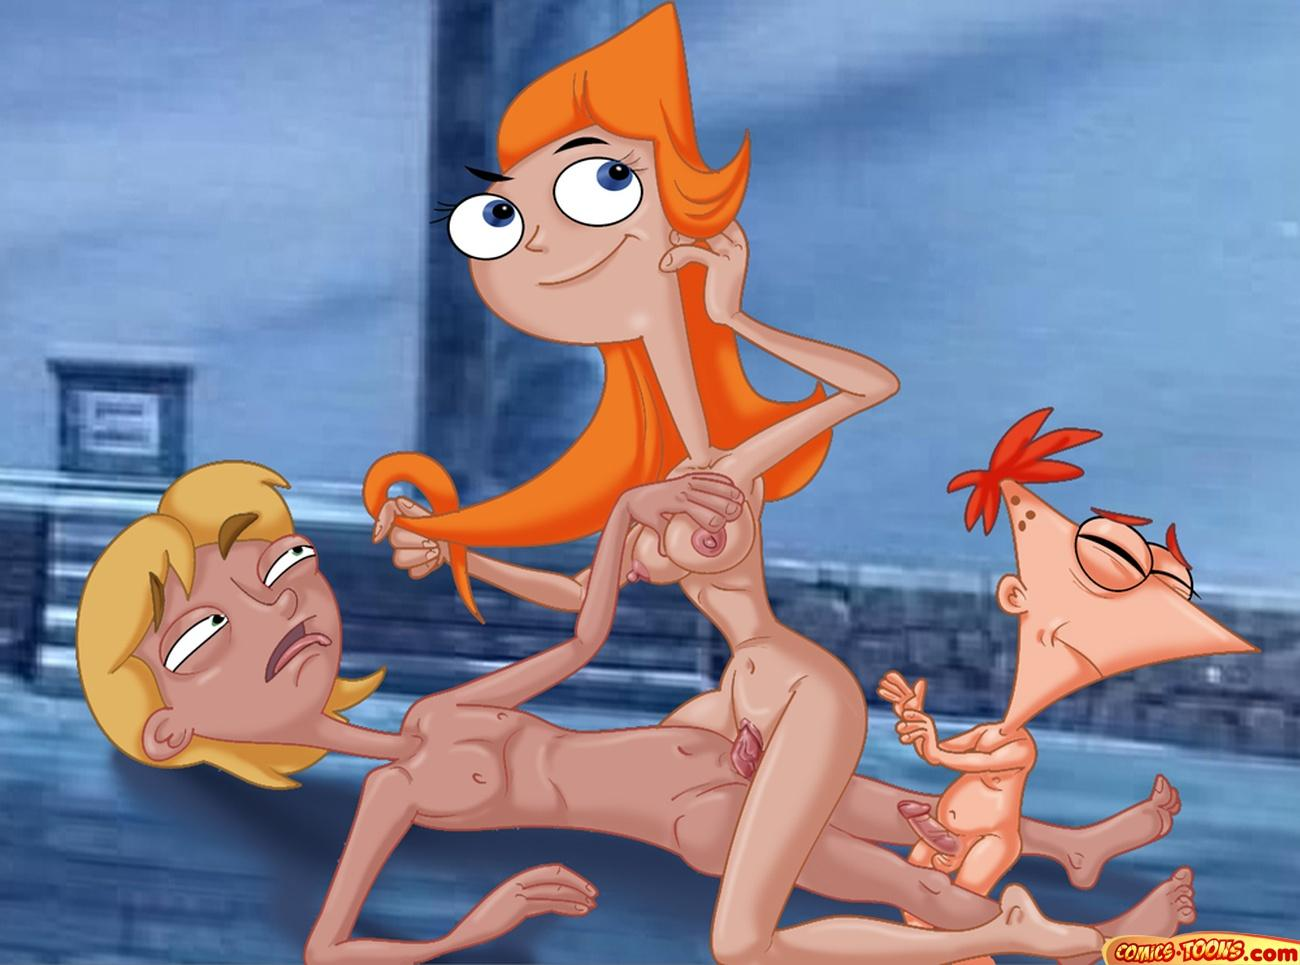 candace phineas feet ferb and Shaved bottomless in a tank top